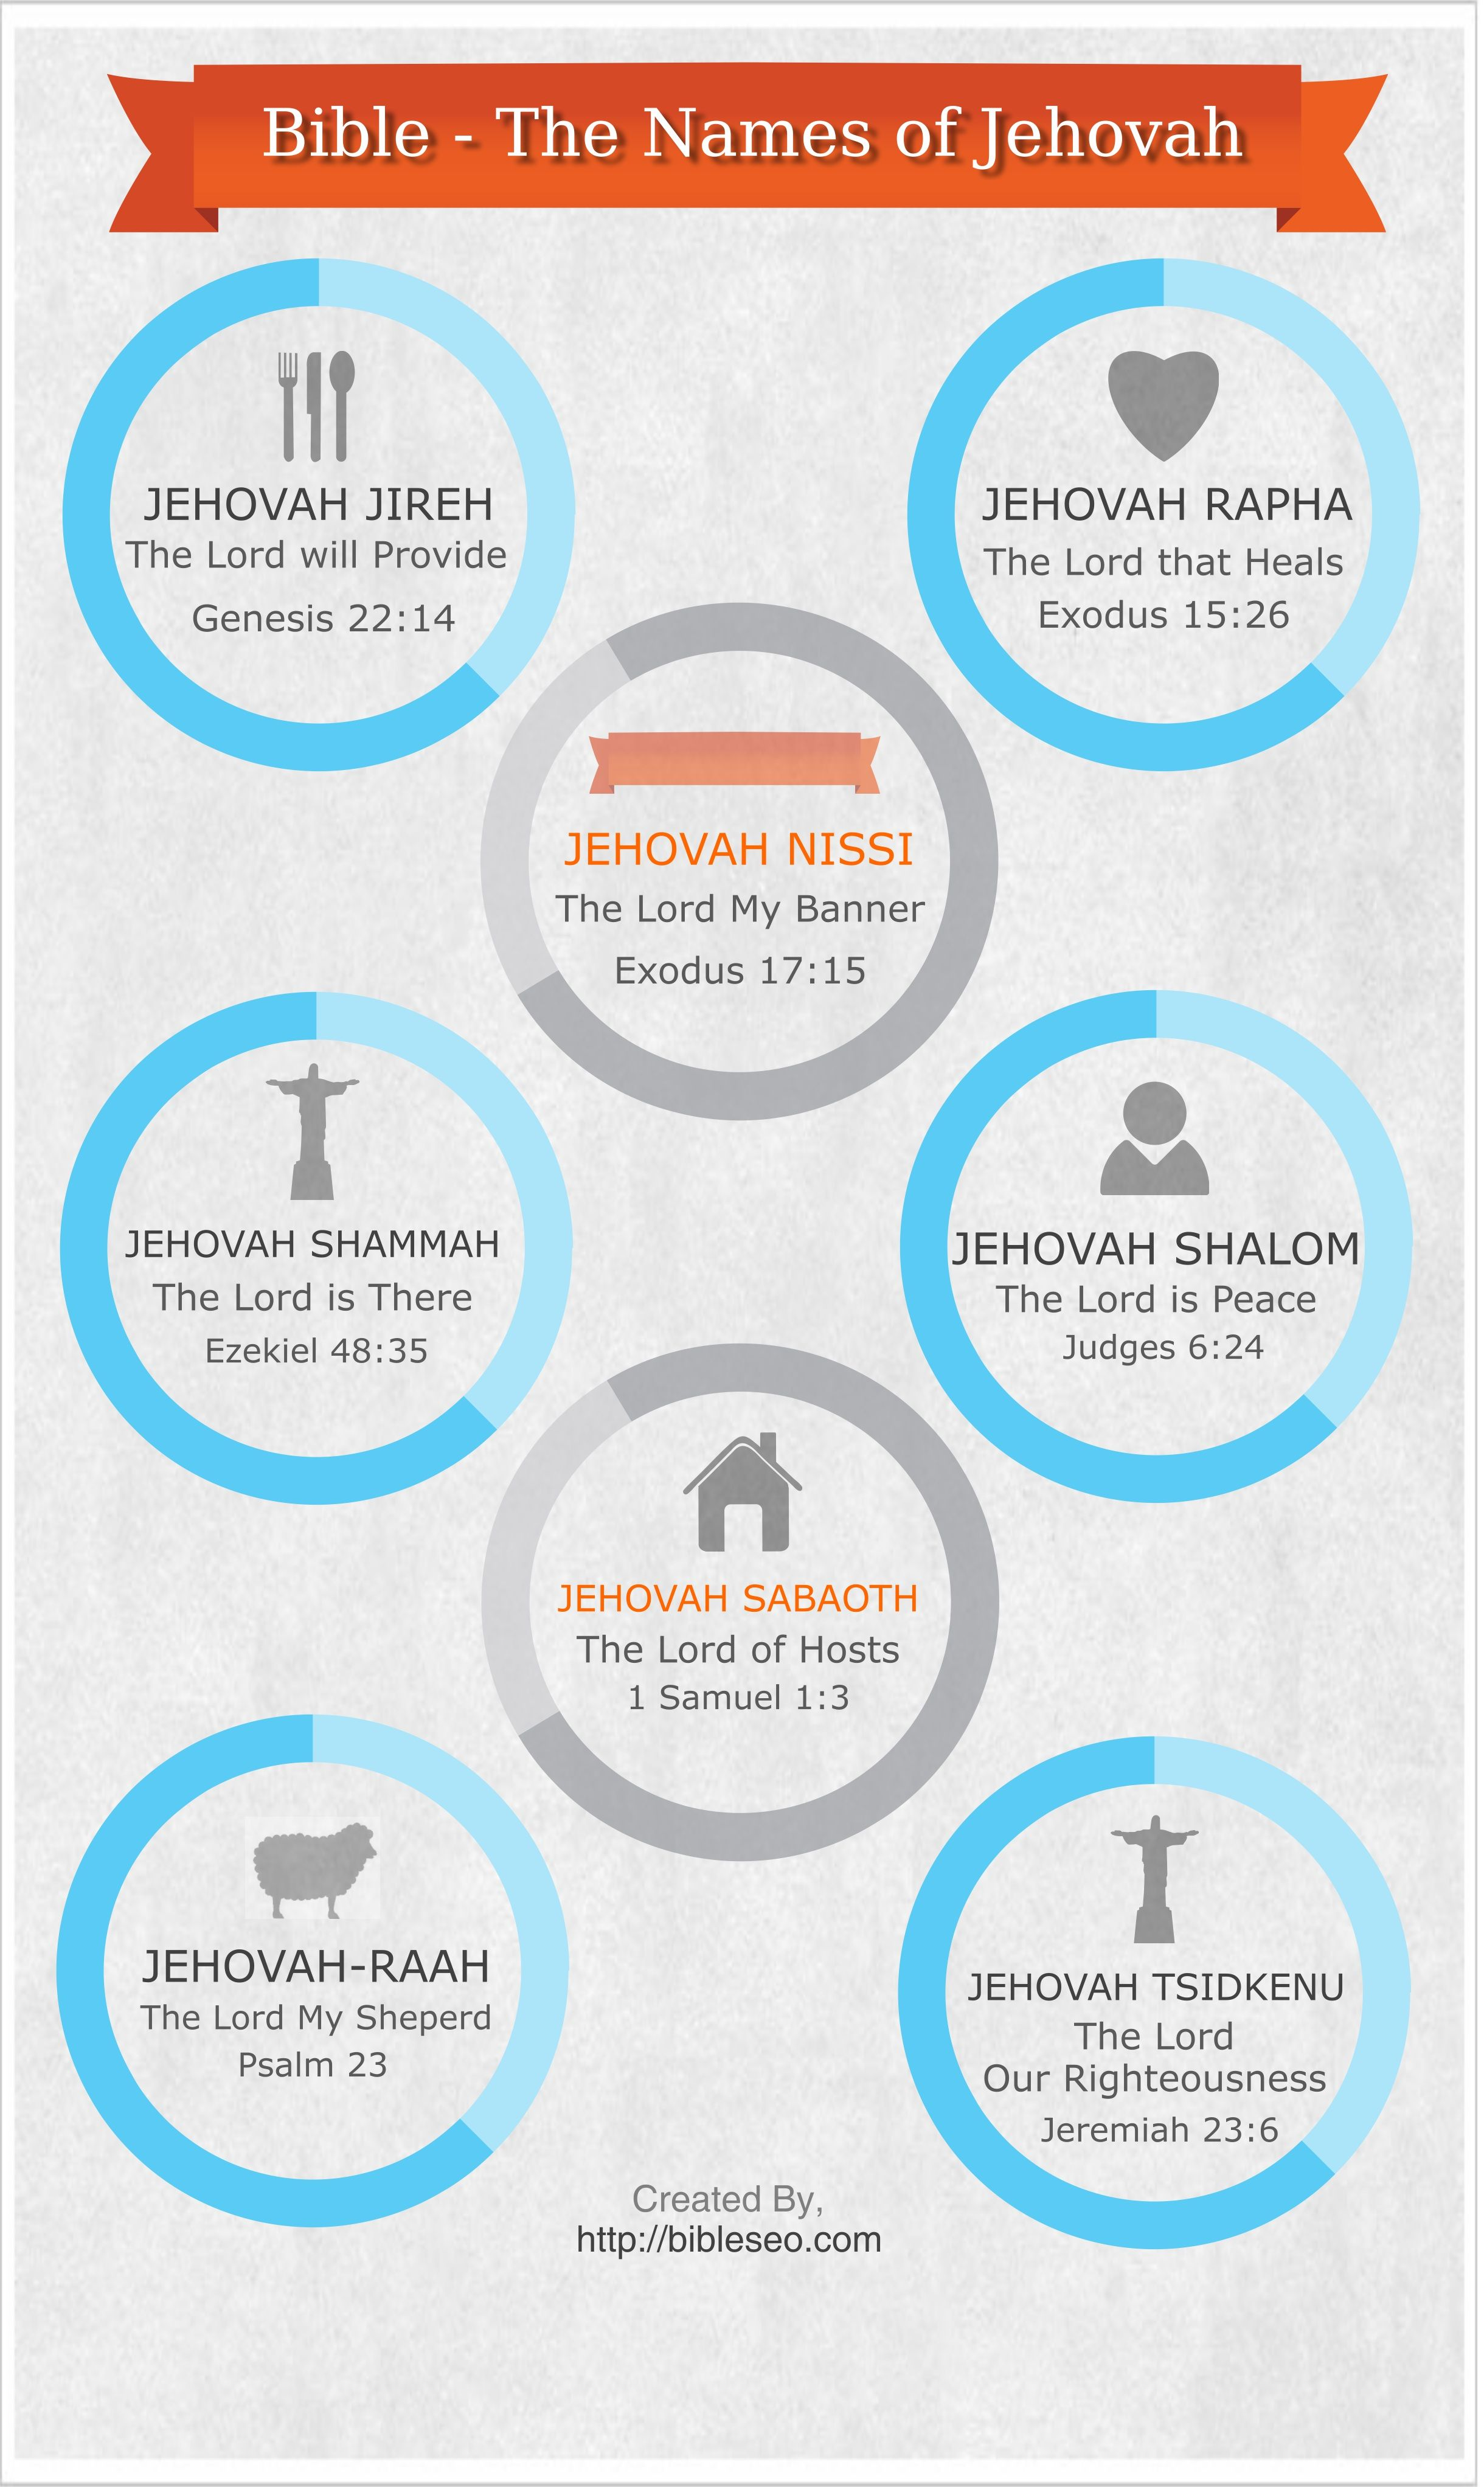 The Names Of Jehovah In The Bible Infographic